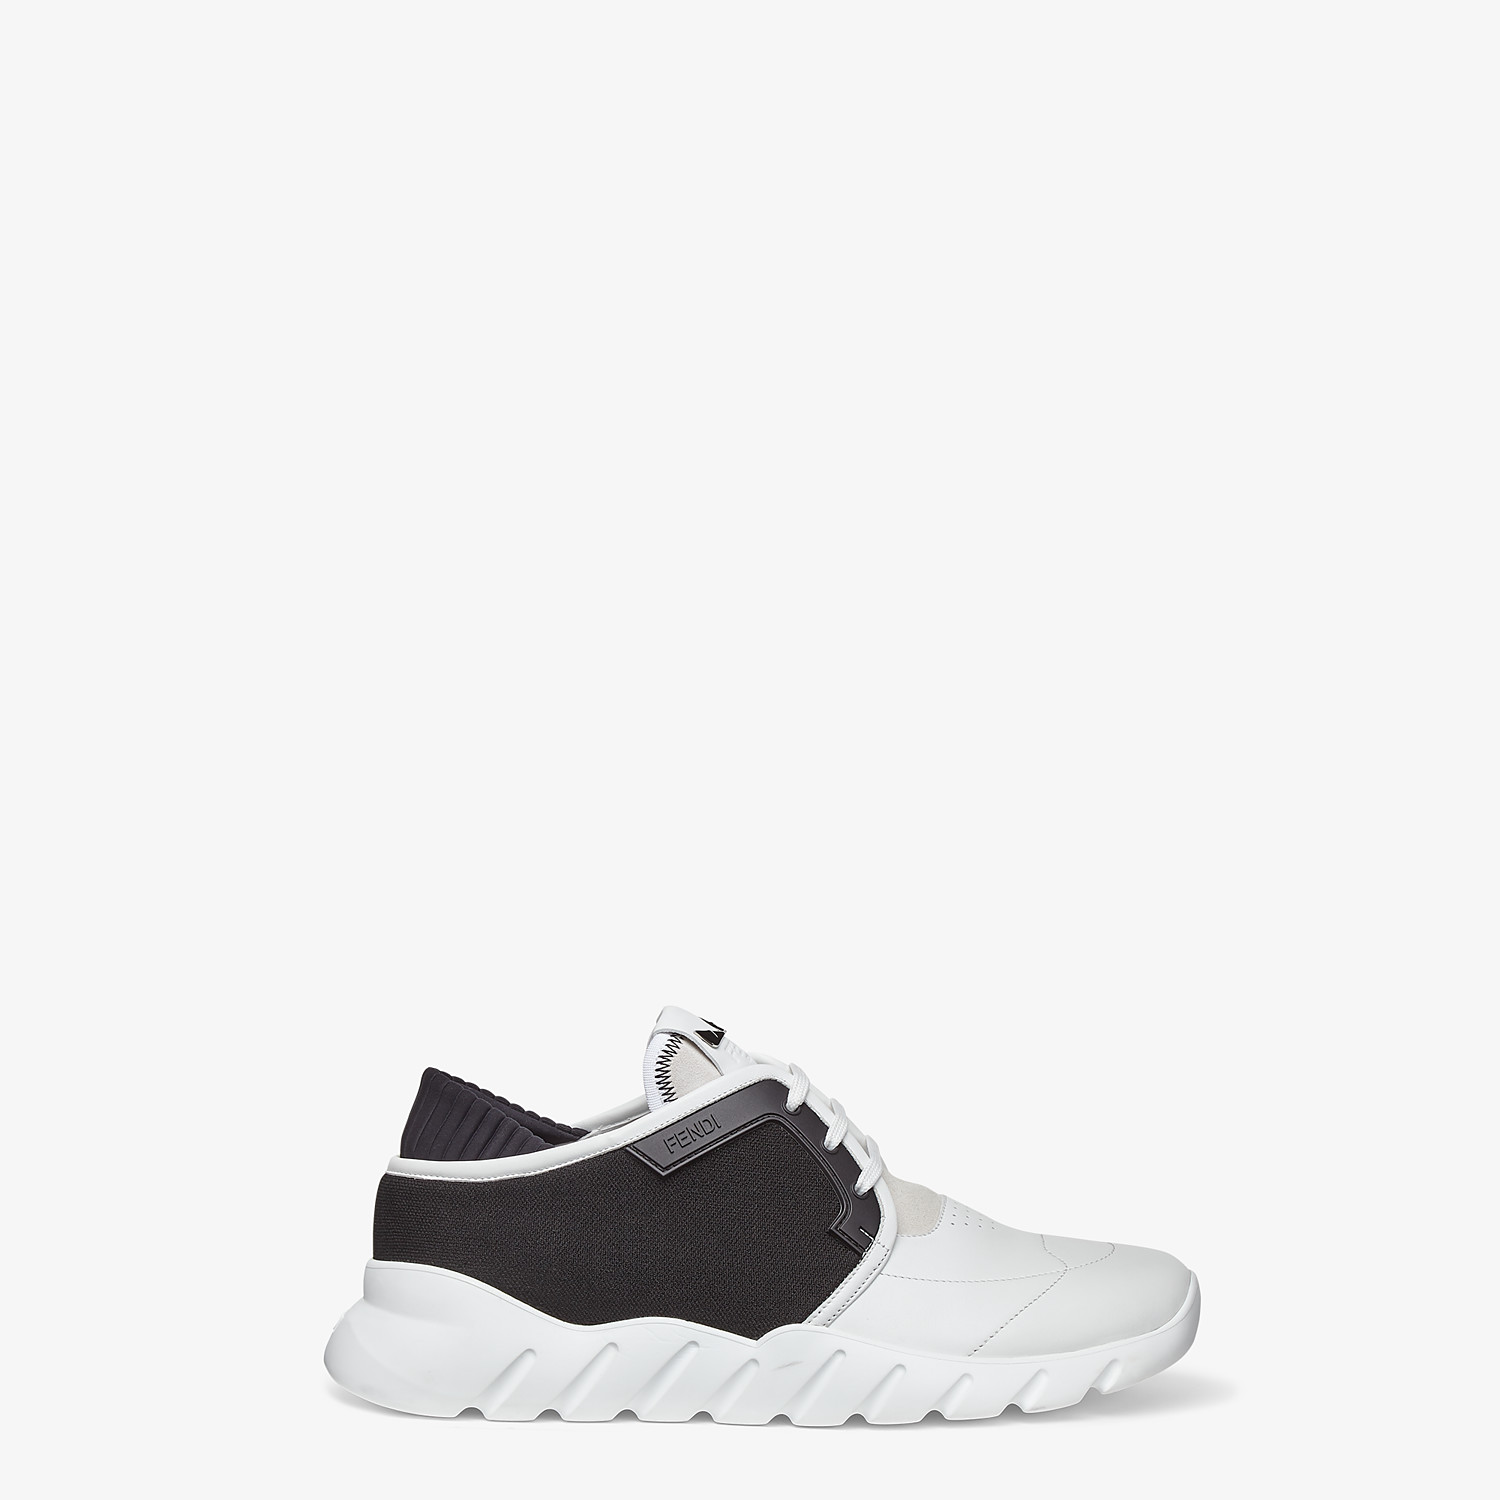 FENDI SNEAKERS - Multicolour leather and mesh low-tops - view 1 detail